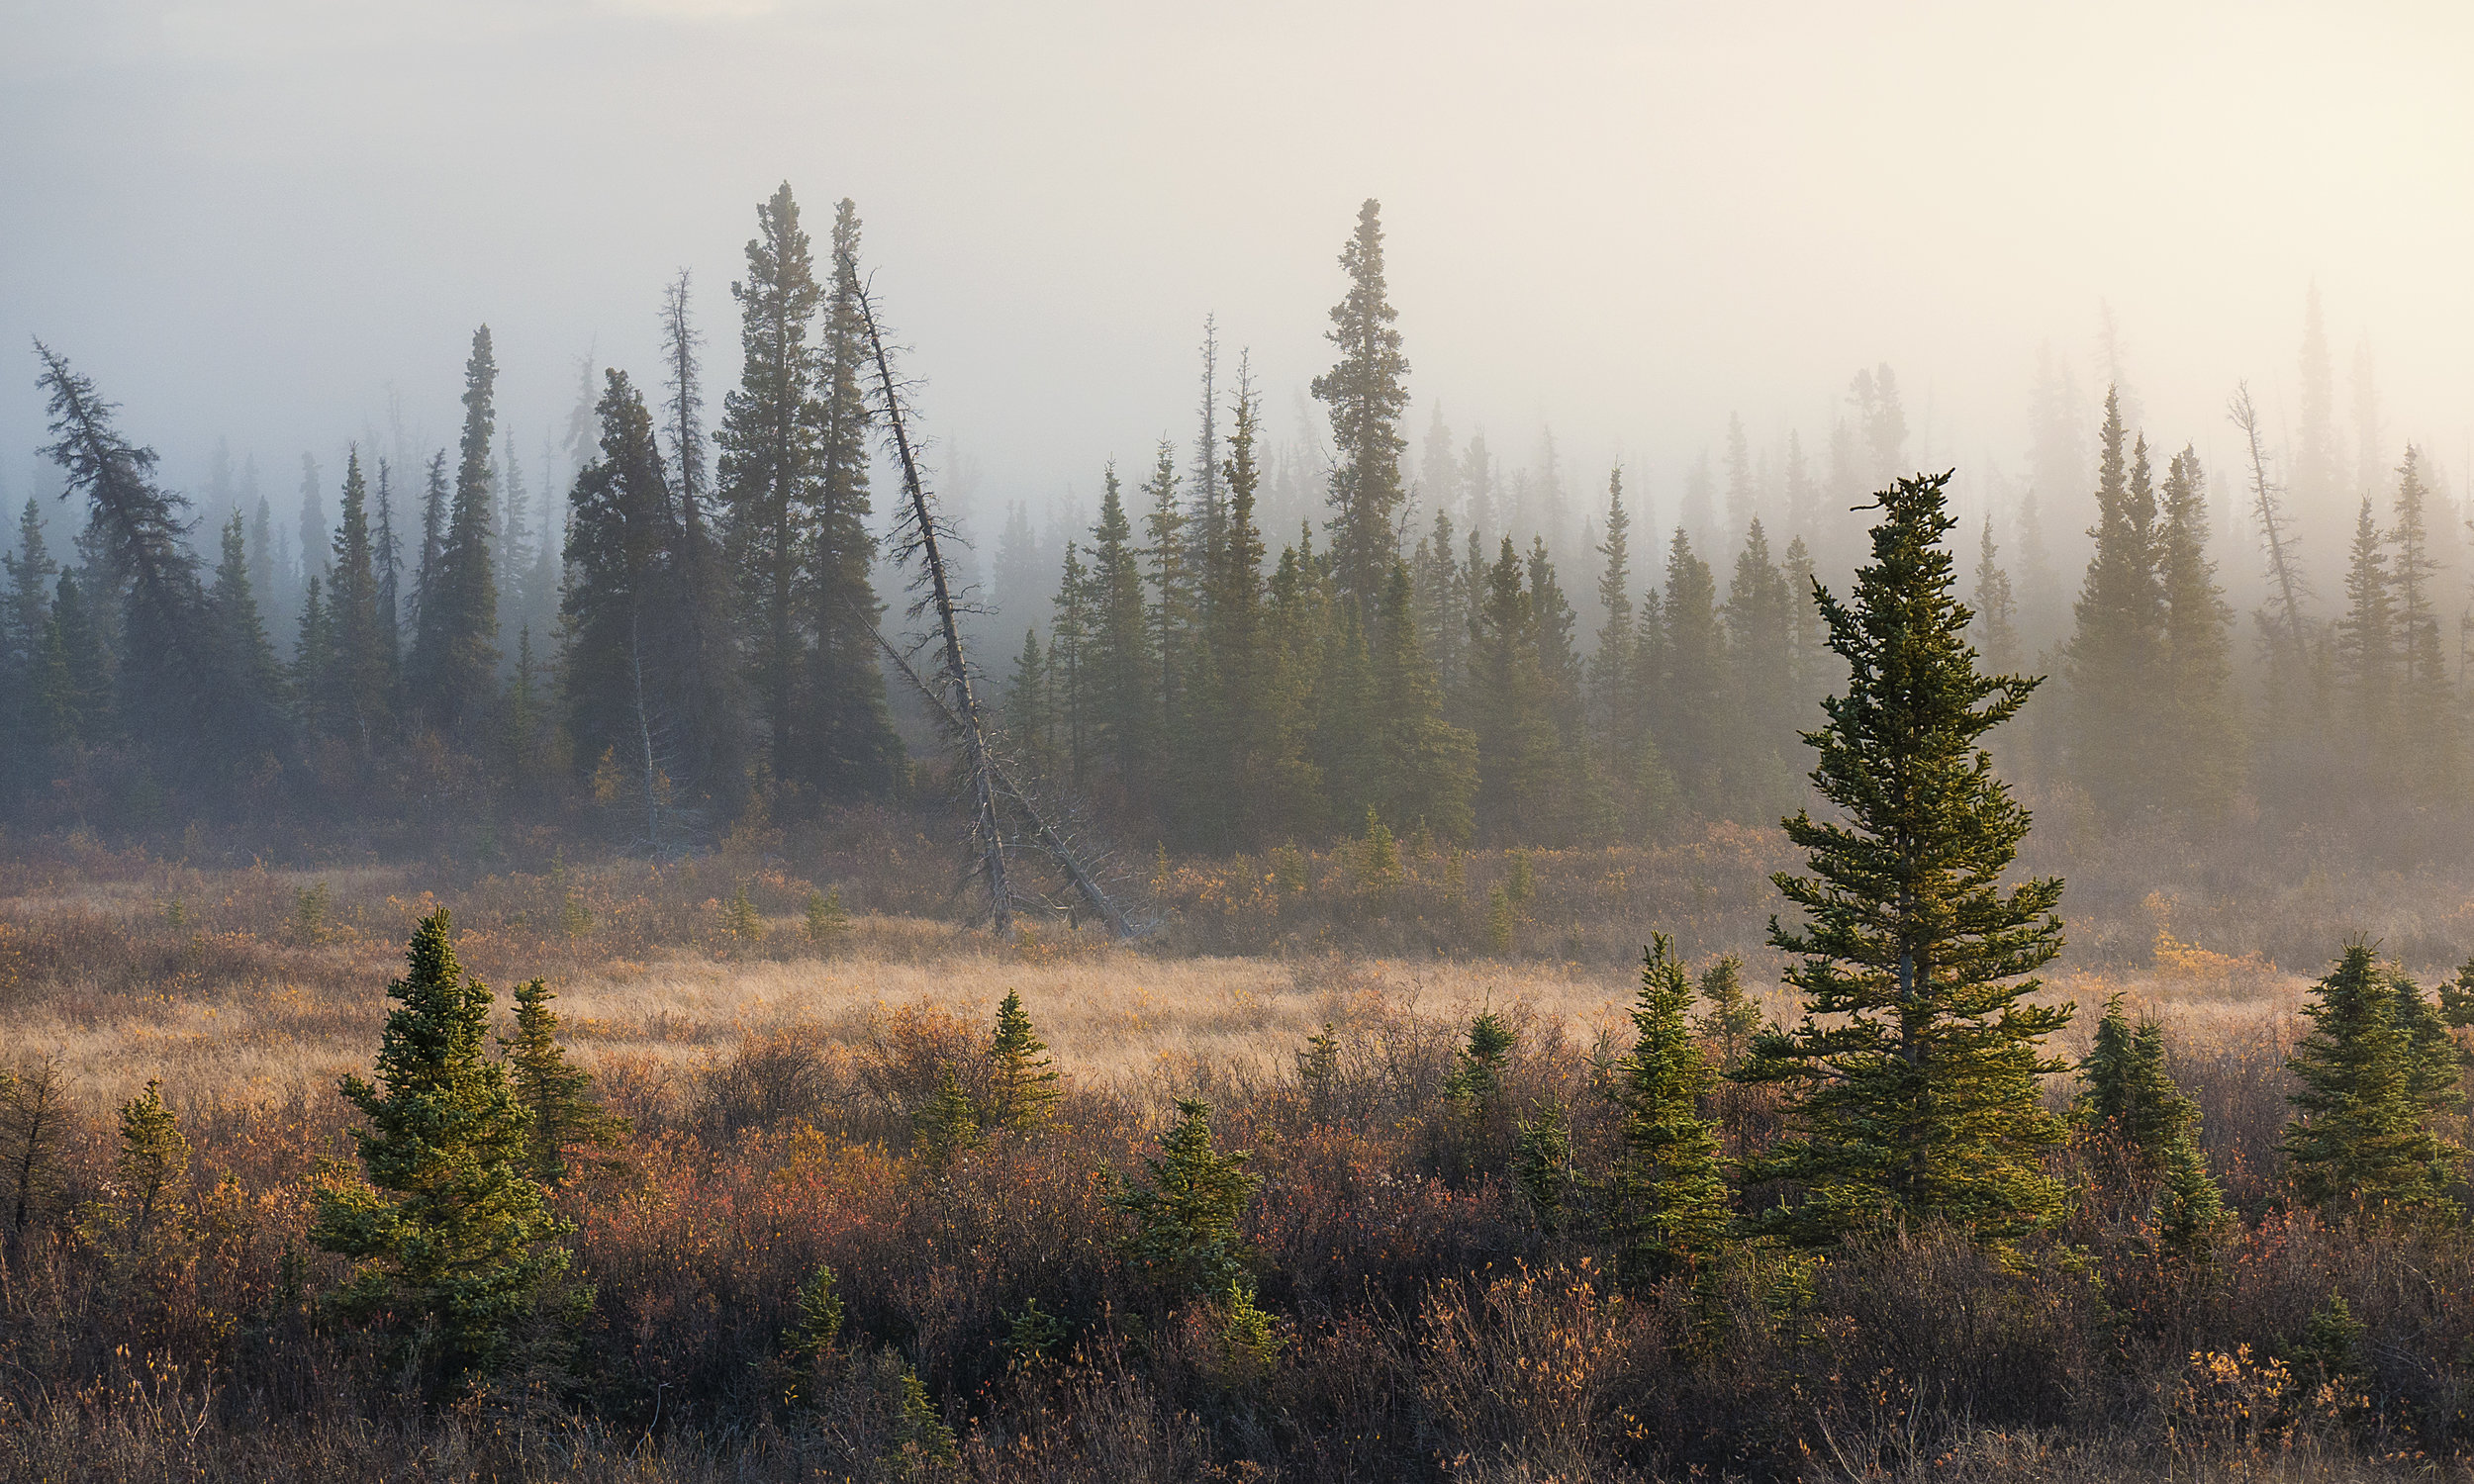 Fog in a low lying area Yukon, by Chris Pepper